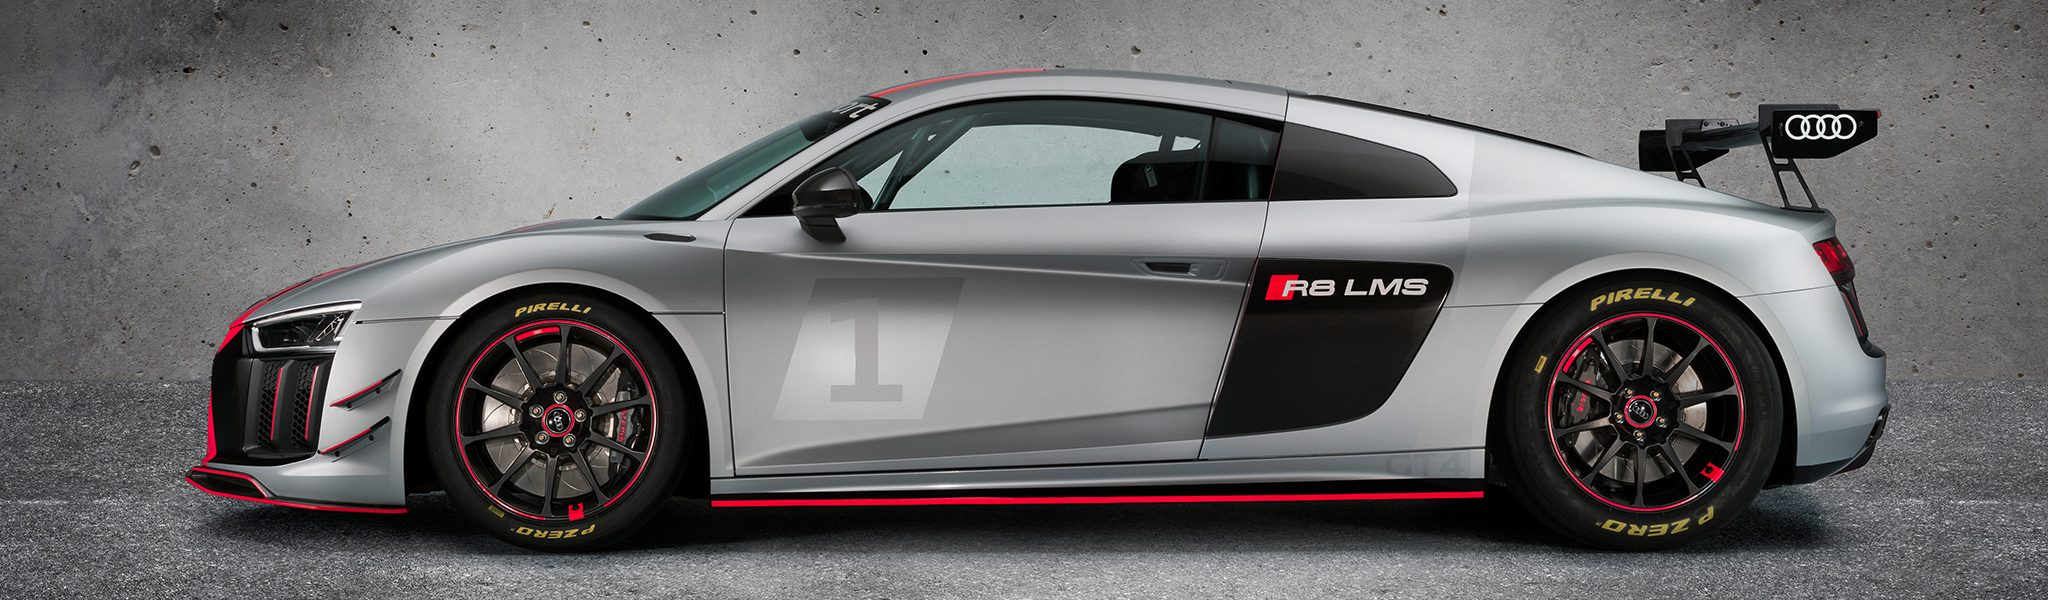 Audi Launches Expanded Audi Sport Brand In The US - Audi career